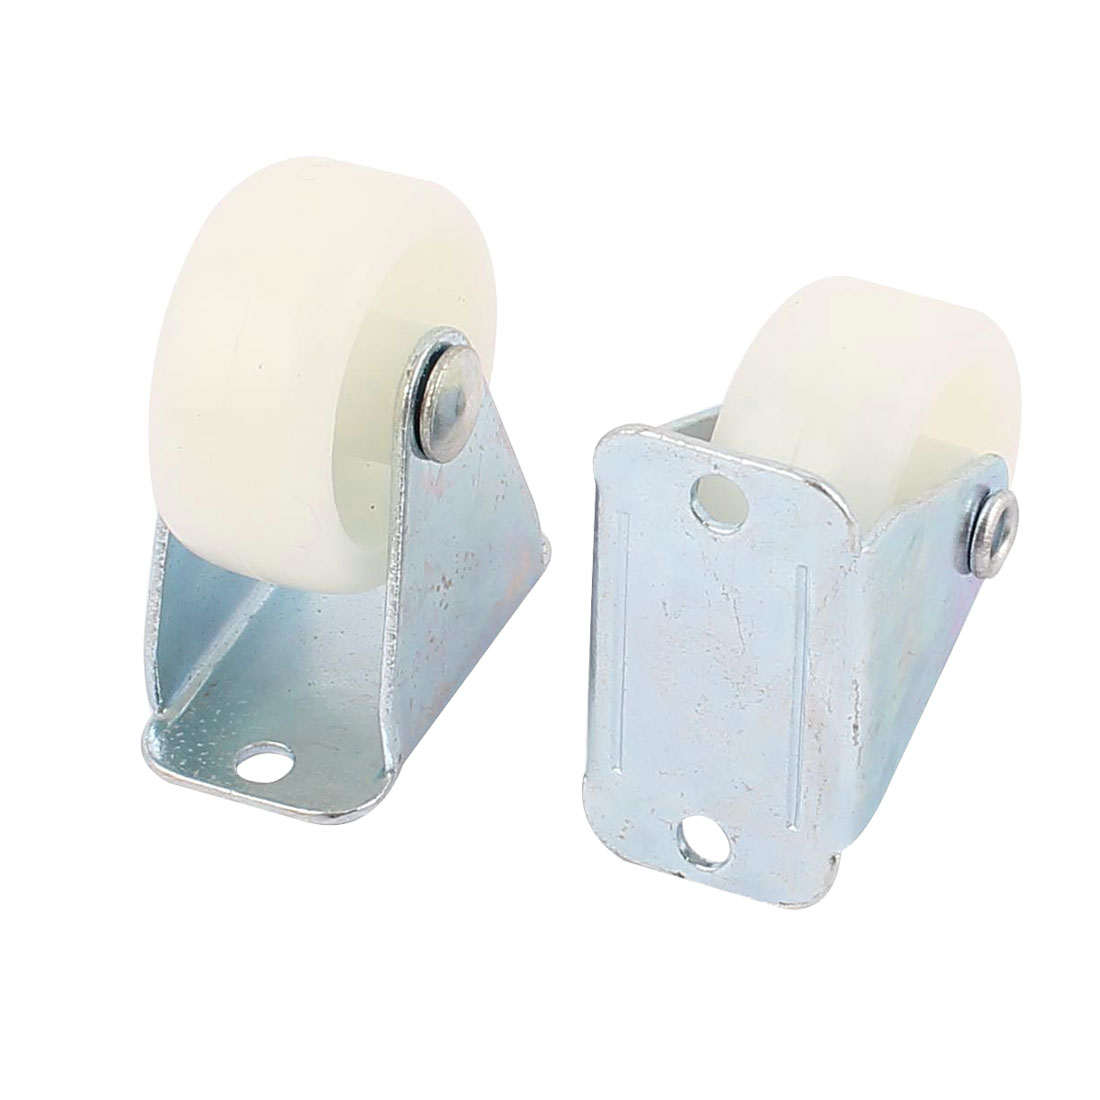 "Office Chair Furniture Trolley 1.2"" 30mm PP Wheel Top Plate Fixed Caster 2pcs"